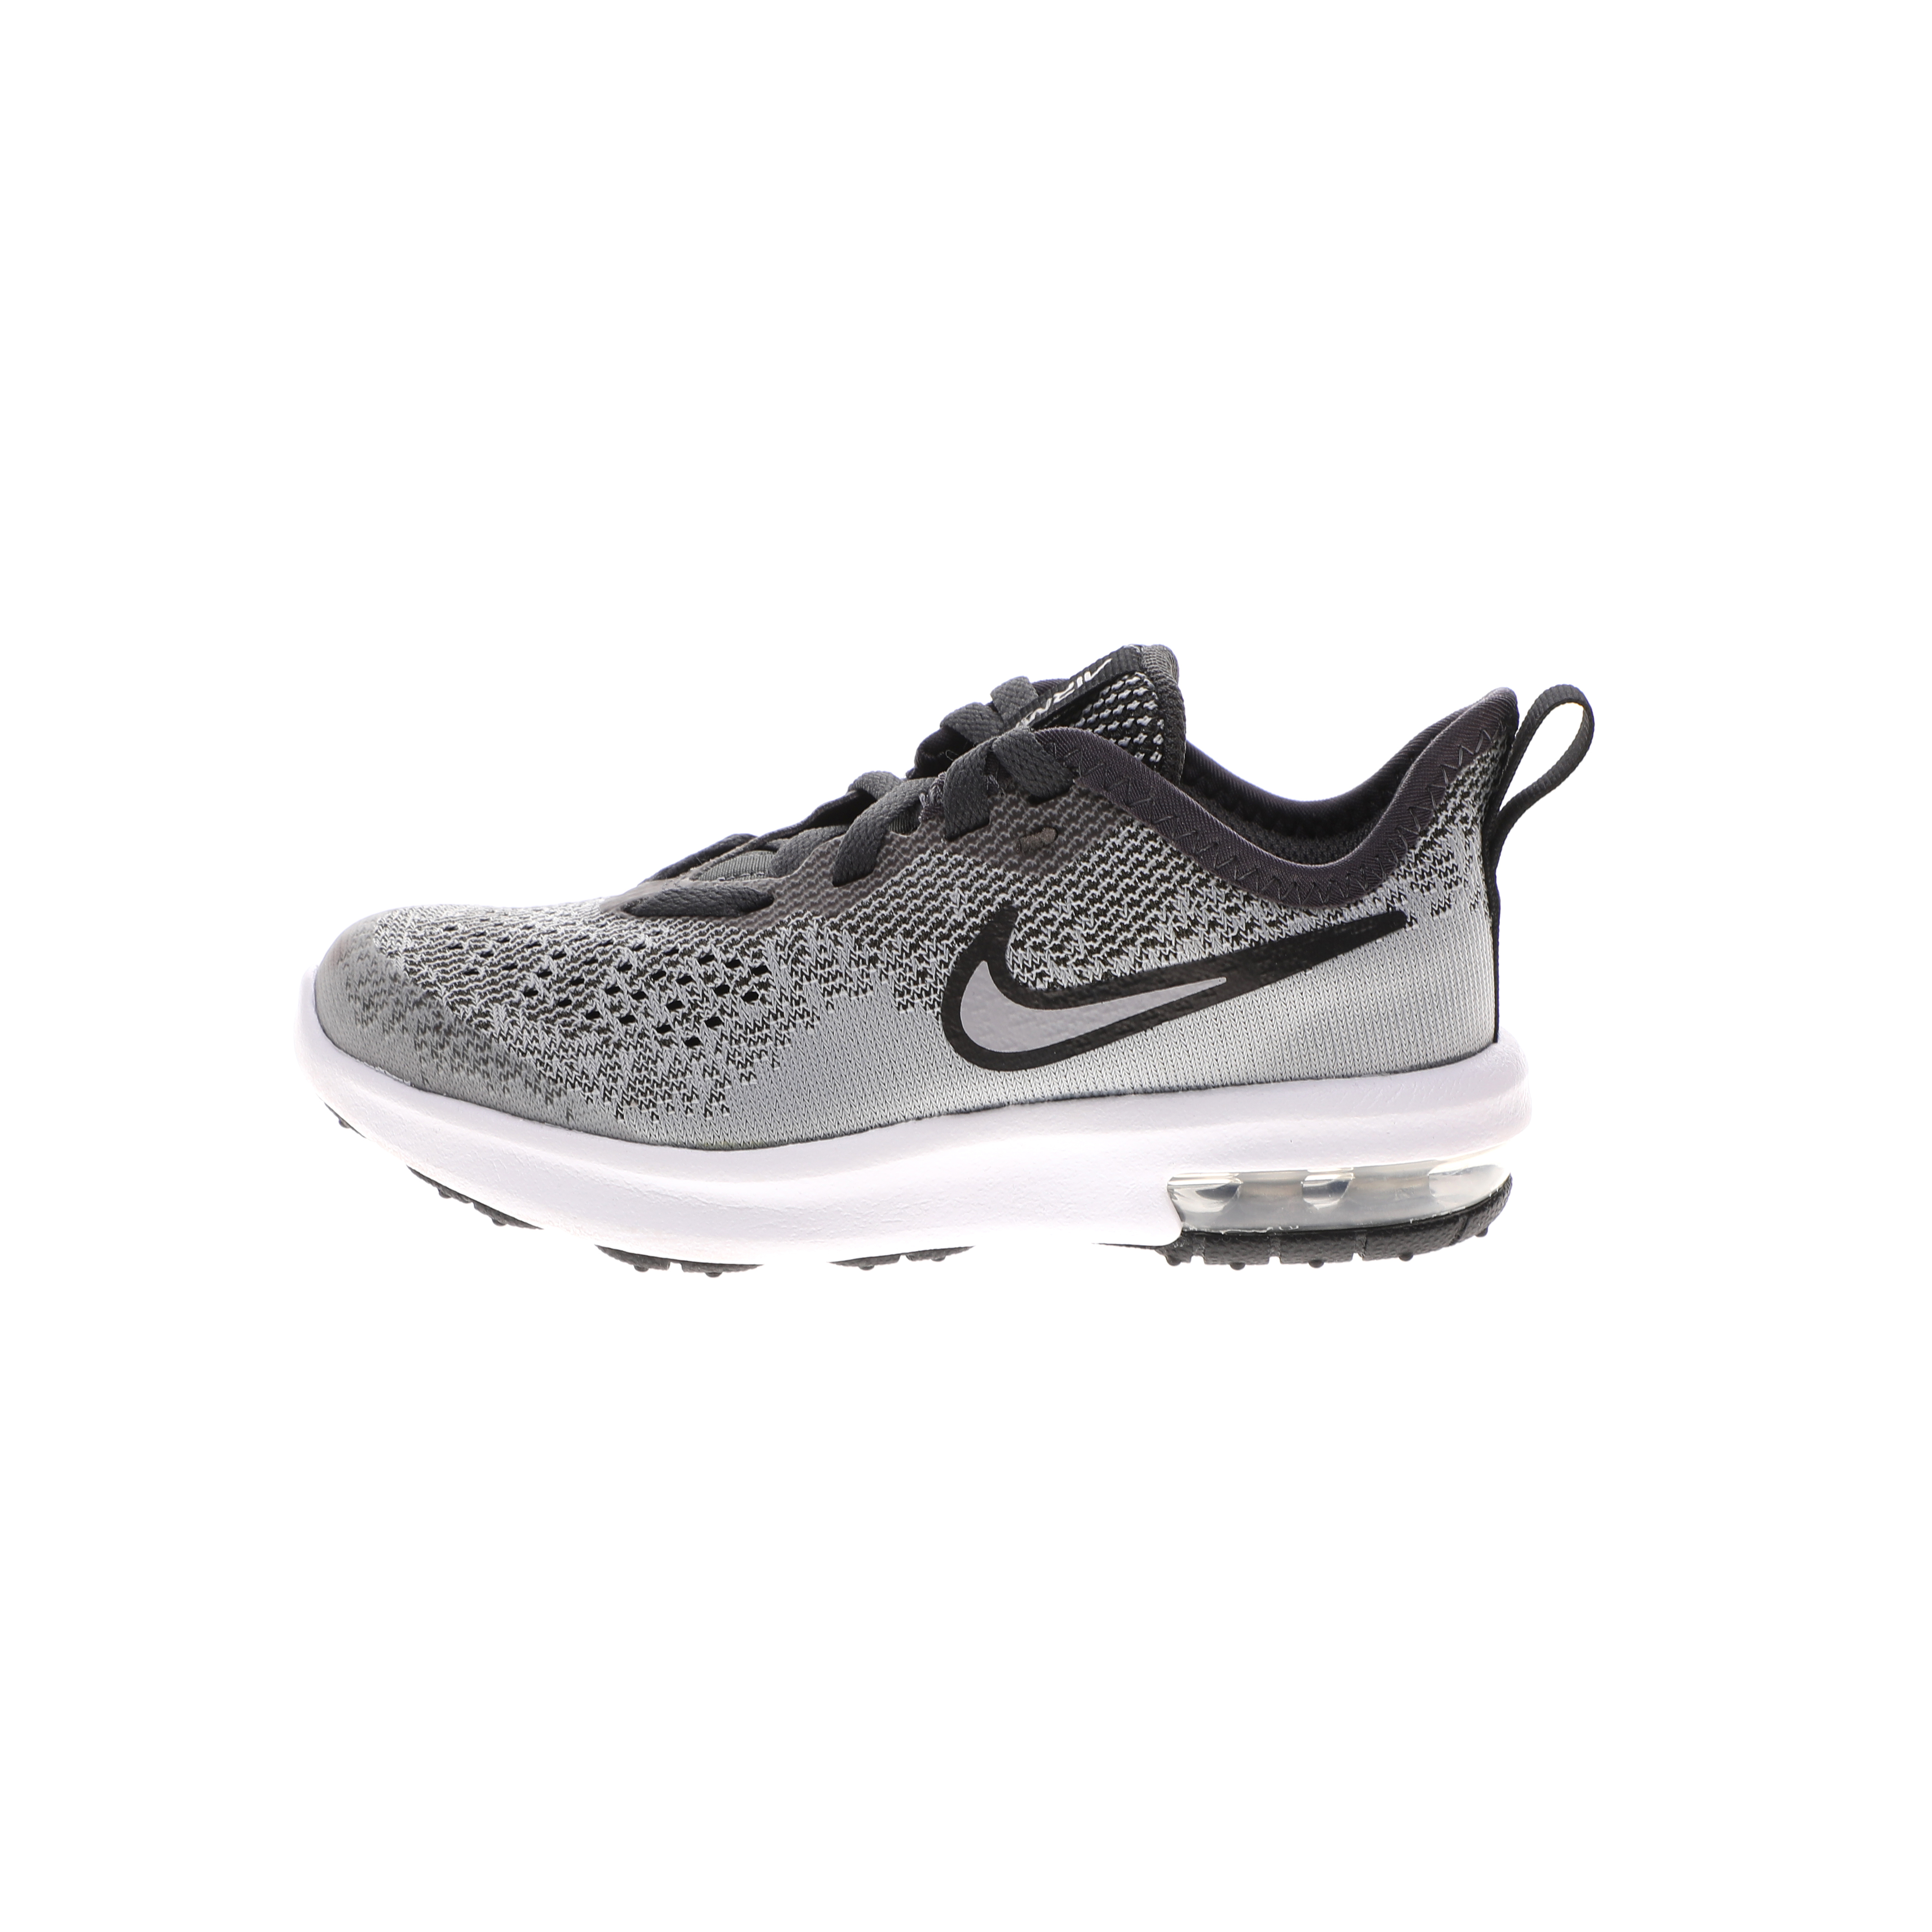 NIKE – Παιδικά αθλητικά παπούτσια NIKE AIR MAX SEQUENT 4 (PS) γκρι